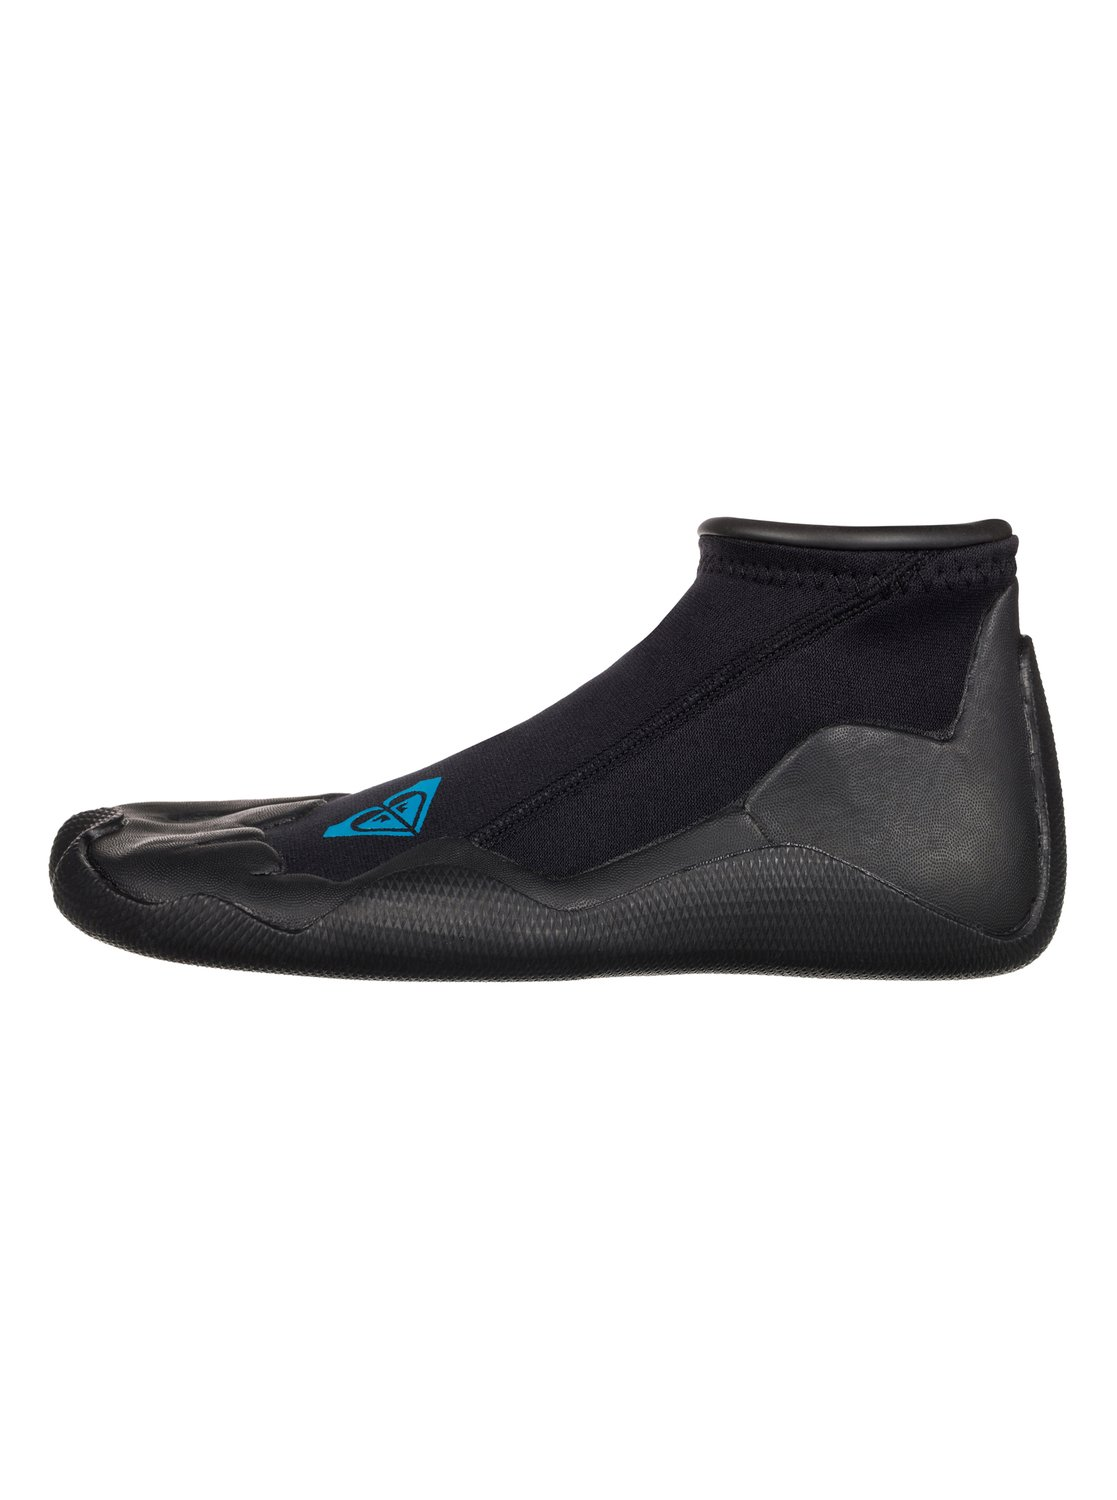 Buty Piankowe Roxy Syncro 1mm Round Toe Reefwalker Surf Booties (Black)